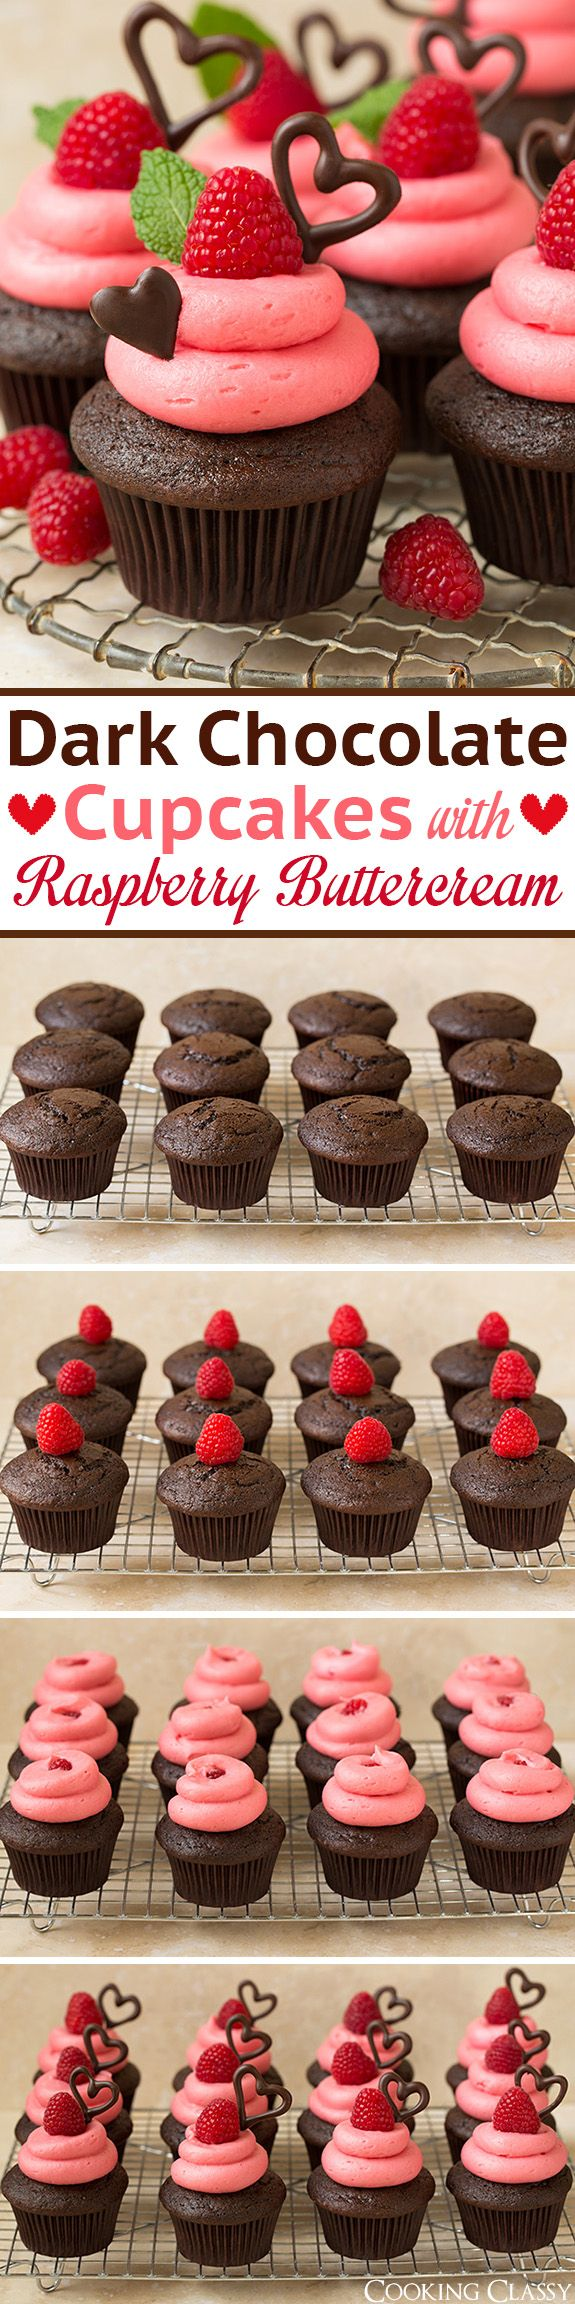 Dark Chocolate Cupcakes with Raspberry Buttercream Frosting – these are so decadently DELICIOUS! The ultim